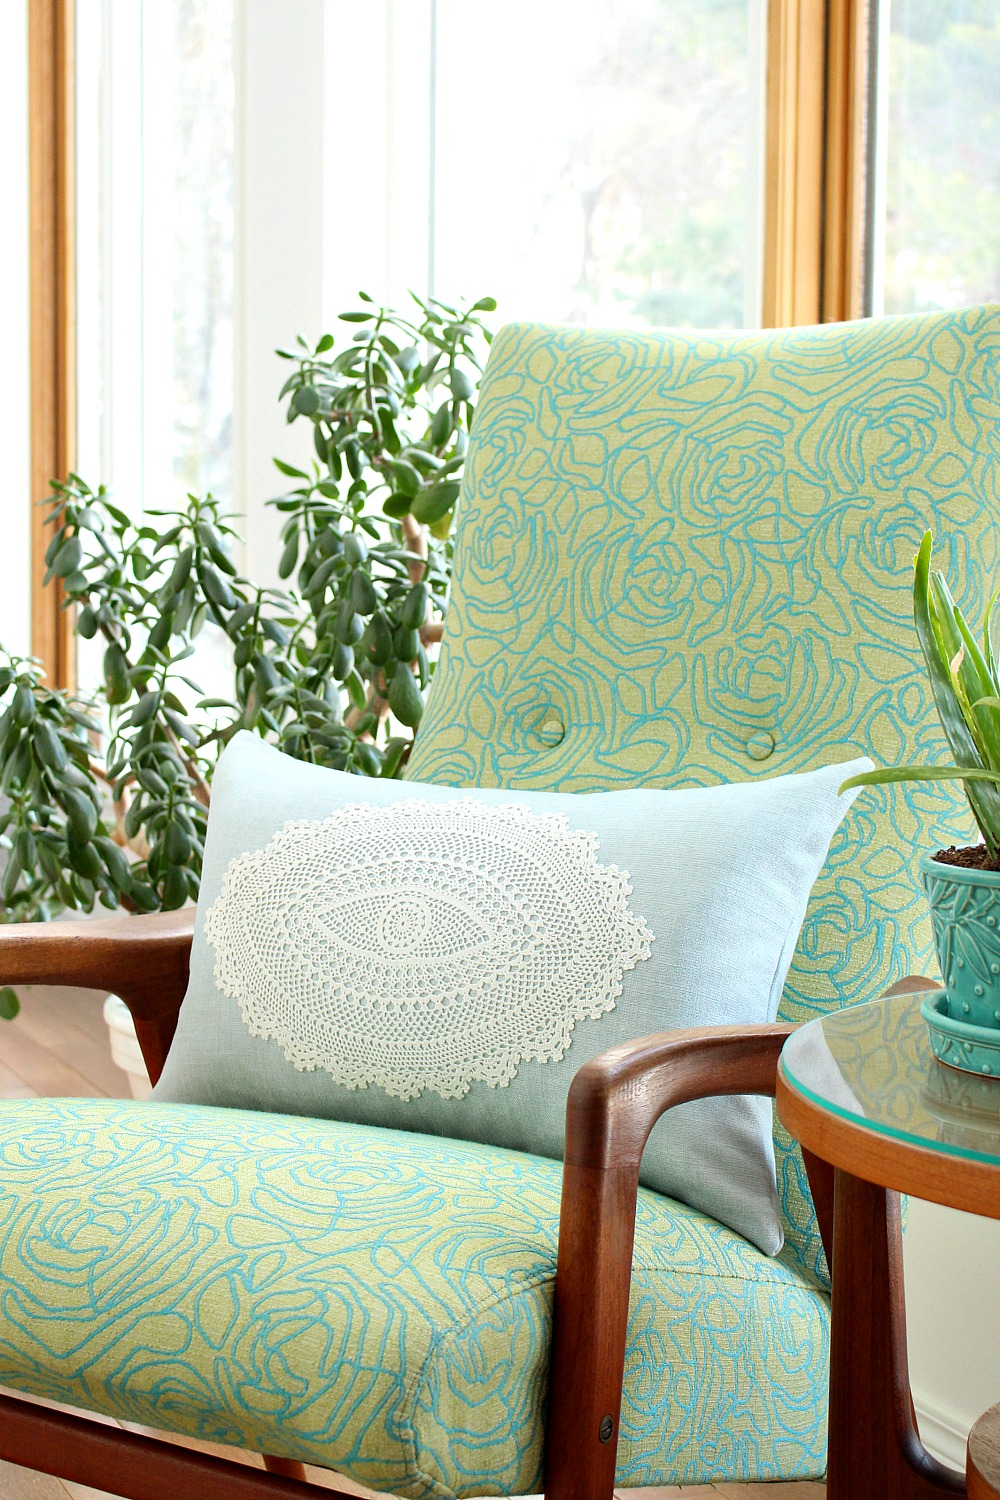 DIY Modern Doily Applique Throw Pillow